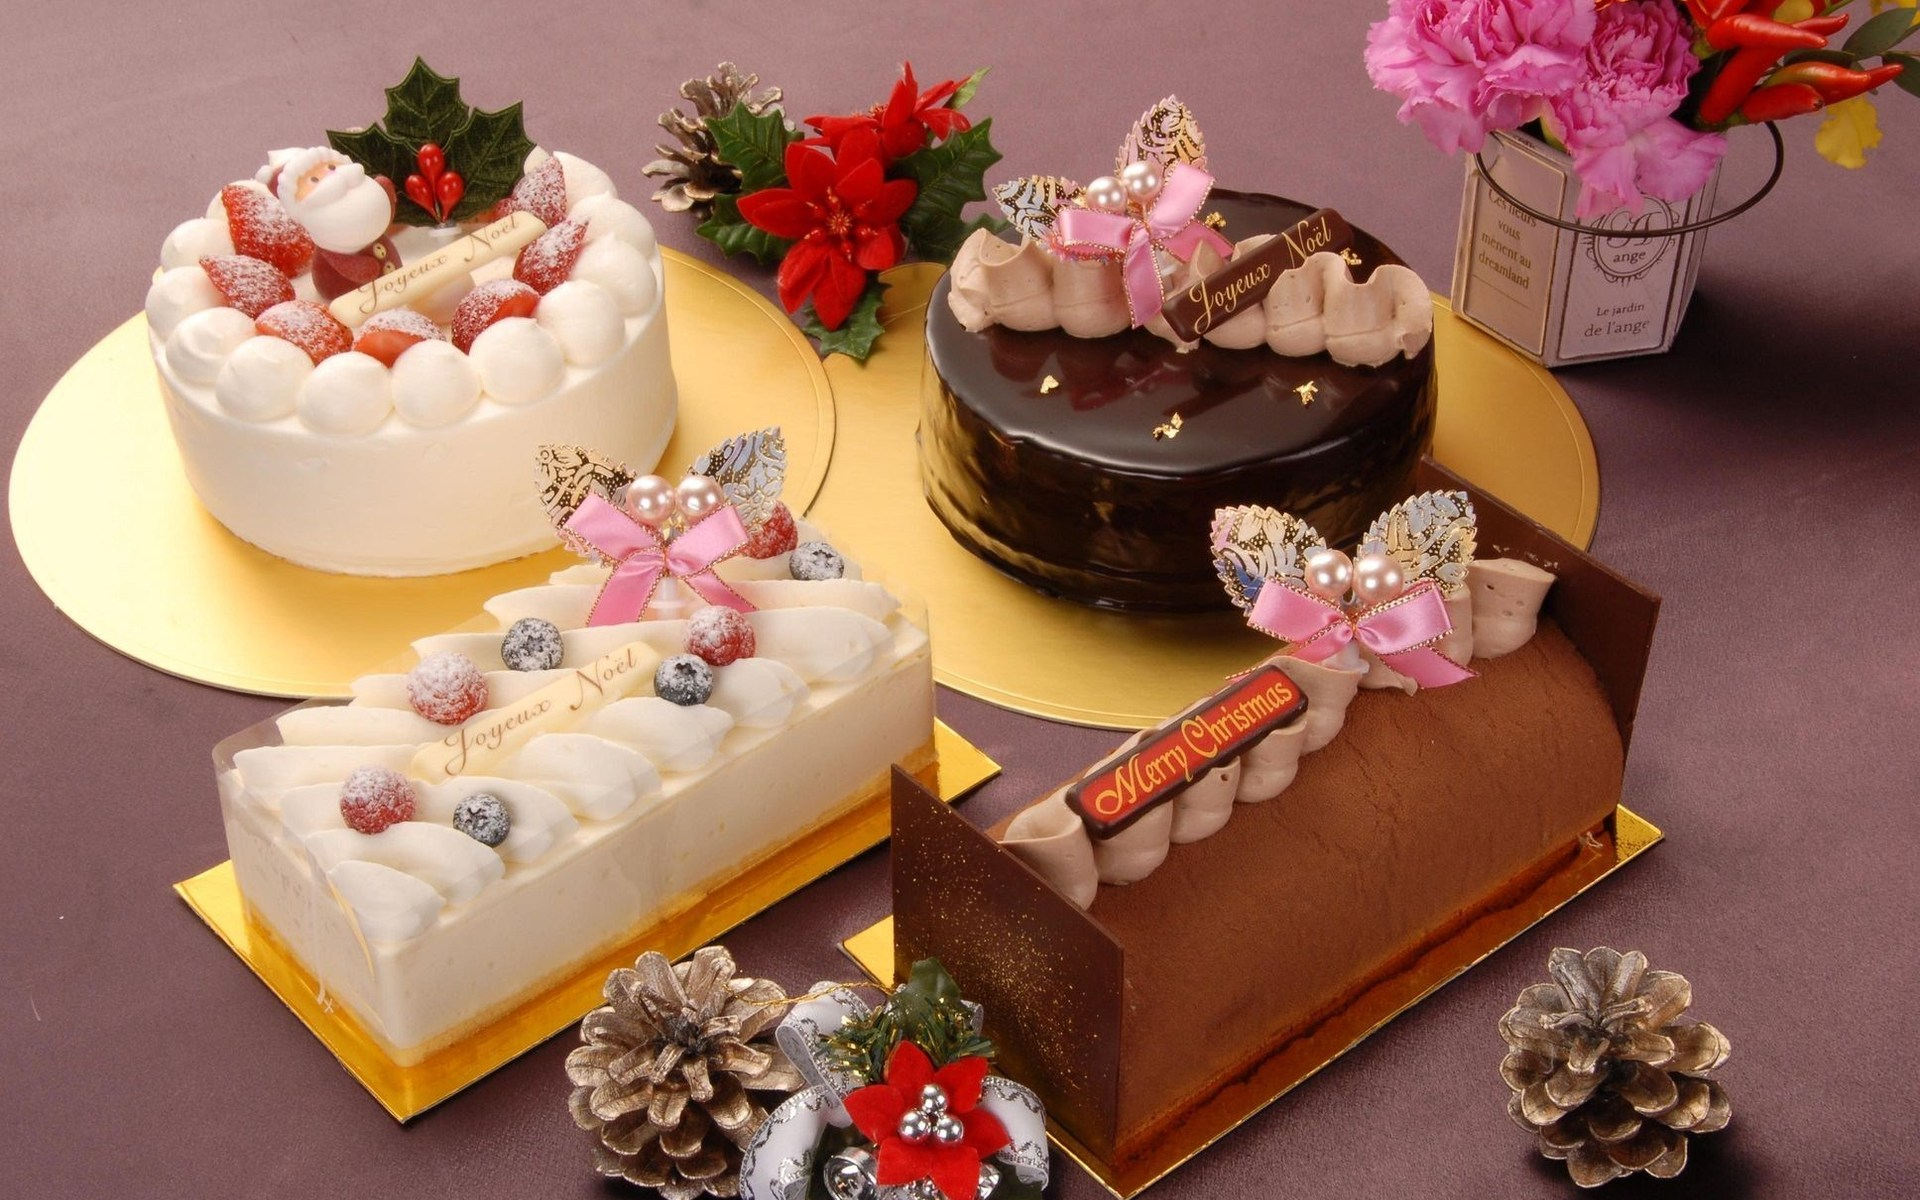 508 Cake HD Wallpapers Backgrounds Wallpaper Abyss Page 2